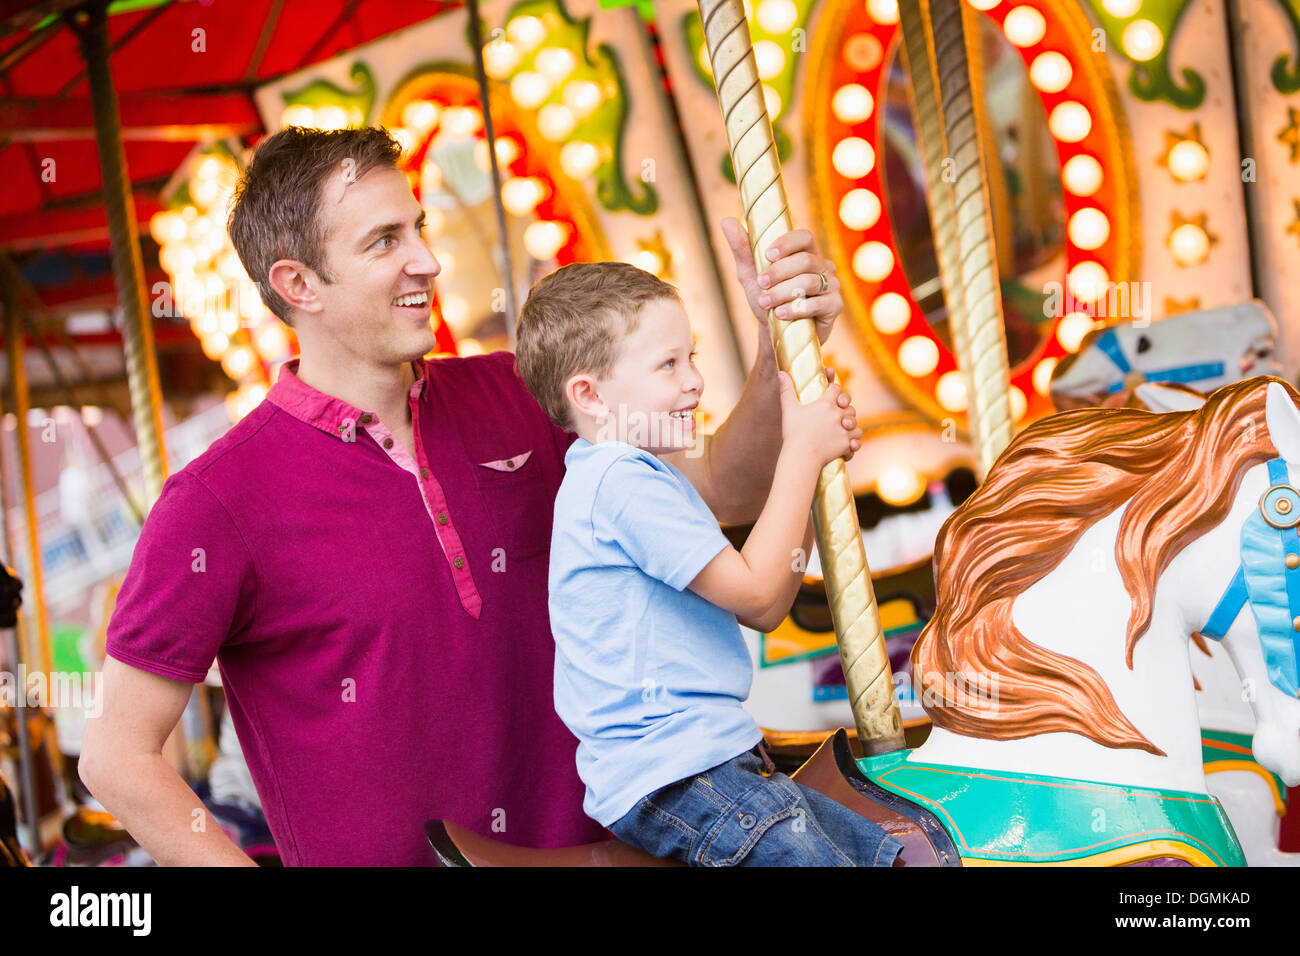 USA, Utah, Salt Lake City, Father and son (4-5) on carousel in amusement park - Stock Image